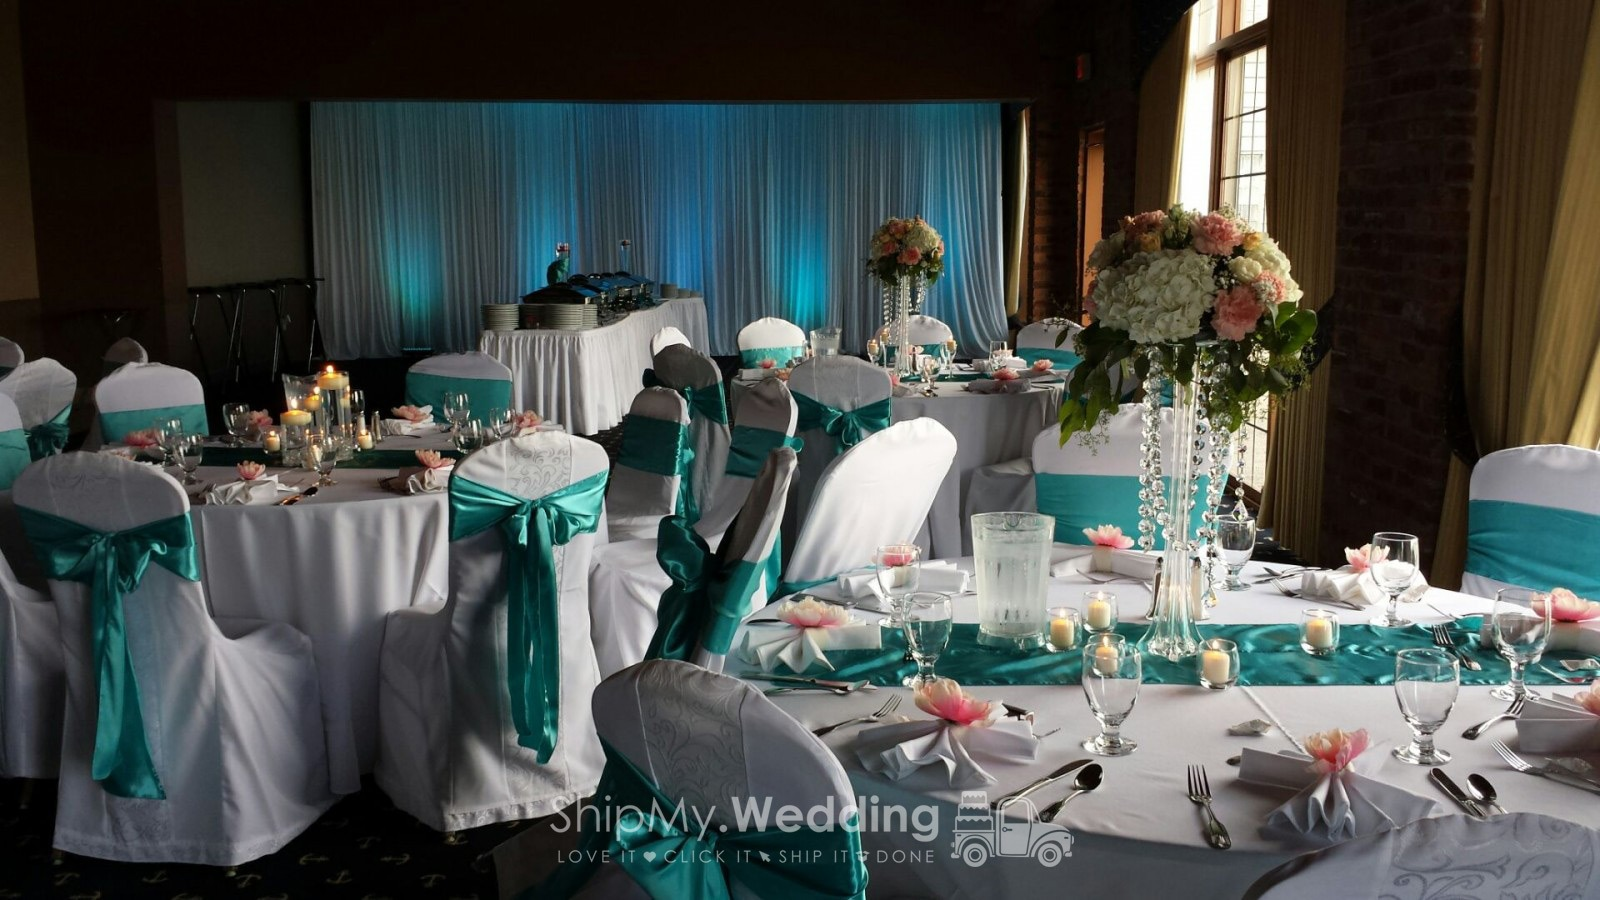 Diy Pipe Drape Rentals For Weddings 24 Off Ships Free